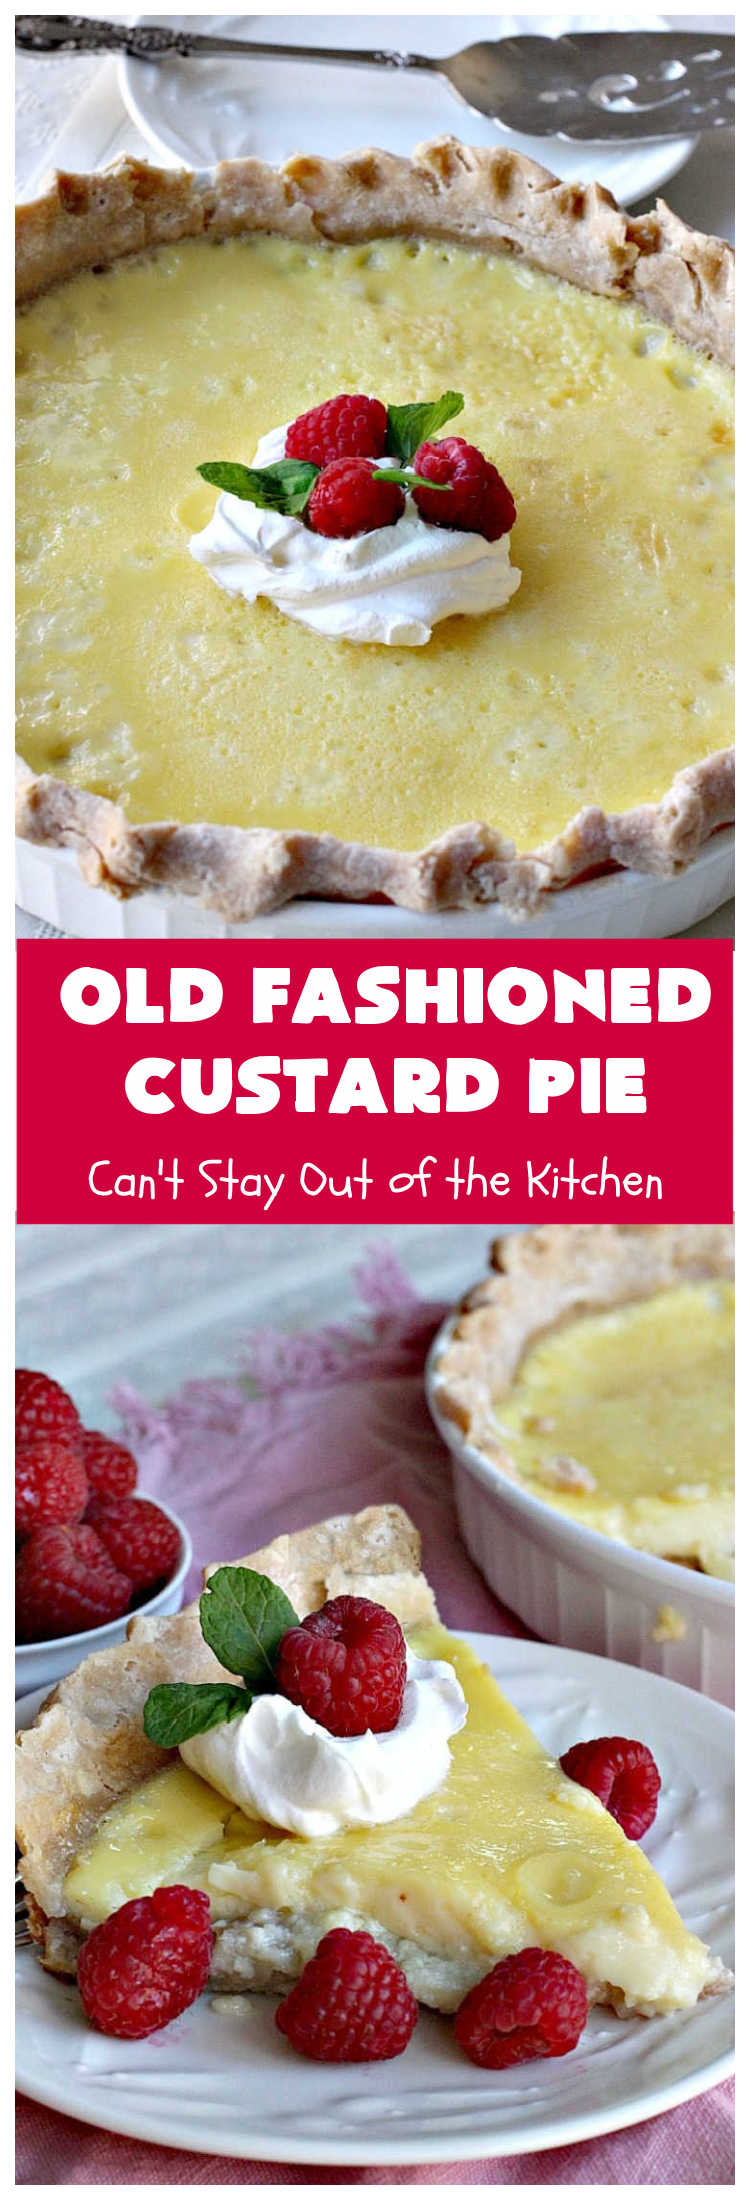 Old Fashioned Custard Pie | Can't Stay Out of the Kitchen | this delicious #pie is so mouthwatering yet easy to make. It makes a great #dessert especially when you need one whipped up in a jiffy. It's always been one of my kid's favorite pie recipes because it's not overly sweet. #CustardPie #MomsCustardPie #OldFashionedCustardPie #EasyCustardPie